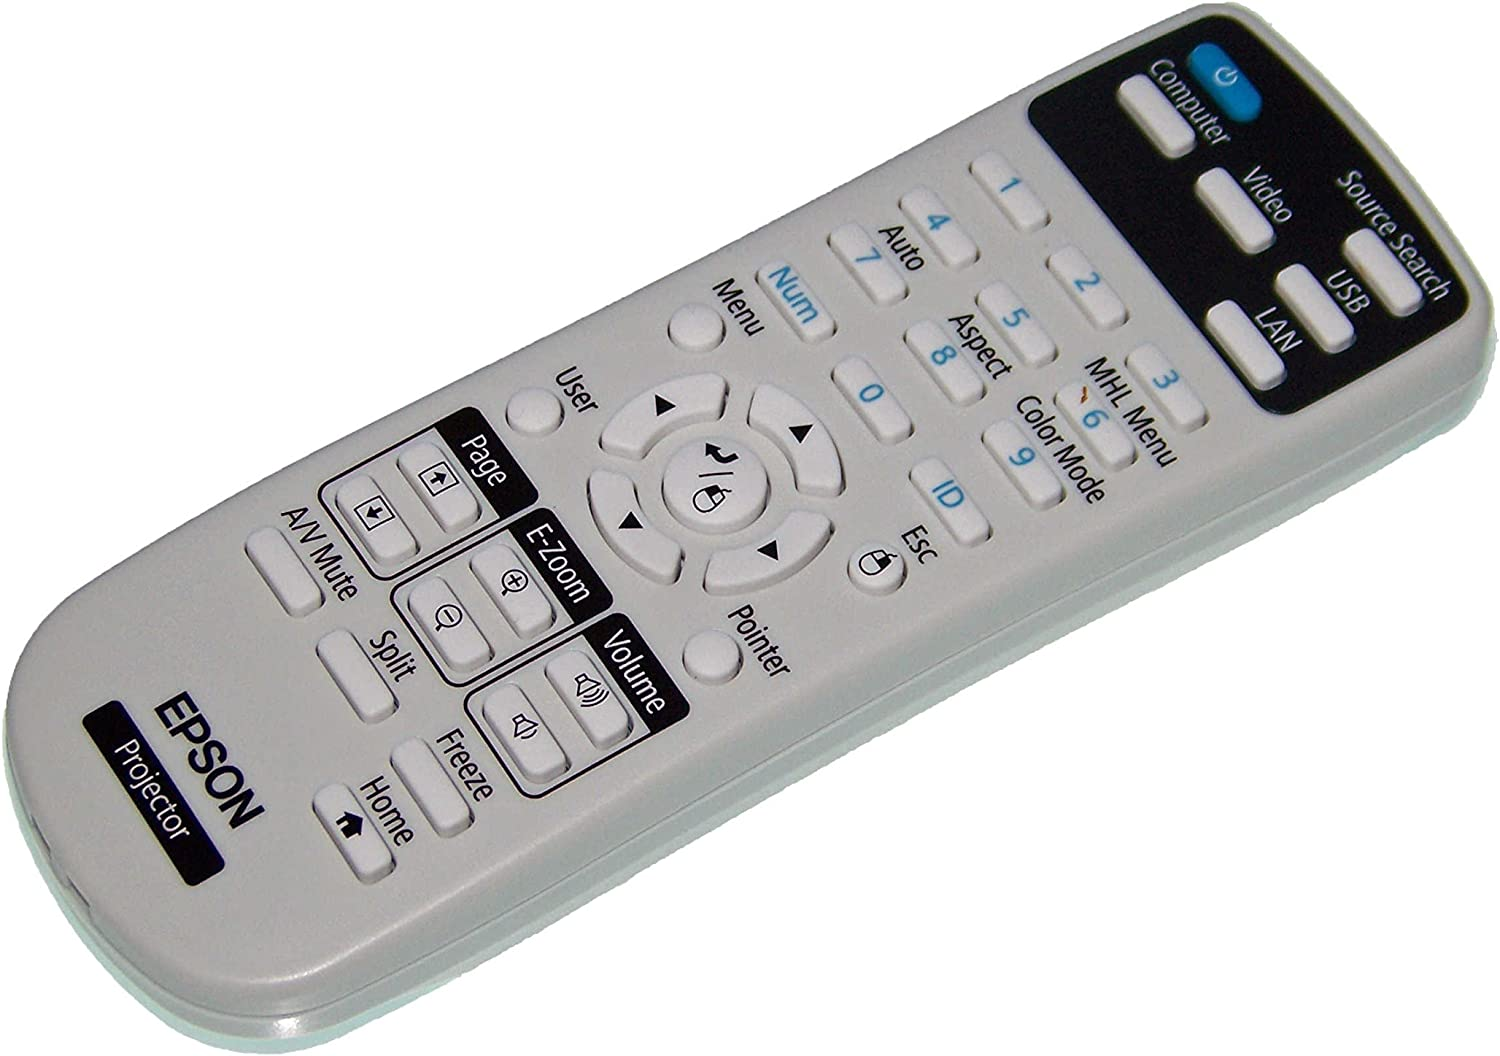 H719A OEM Epson Projector Remote Control Shipped With Epson Models H717A H720A H718A